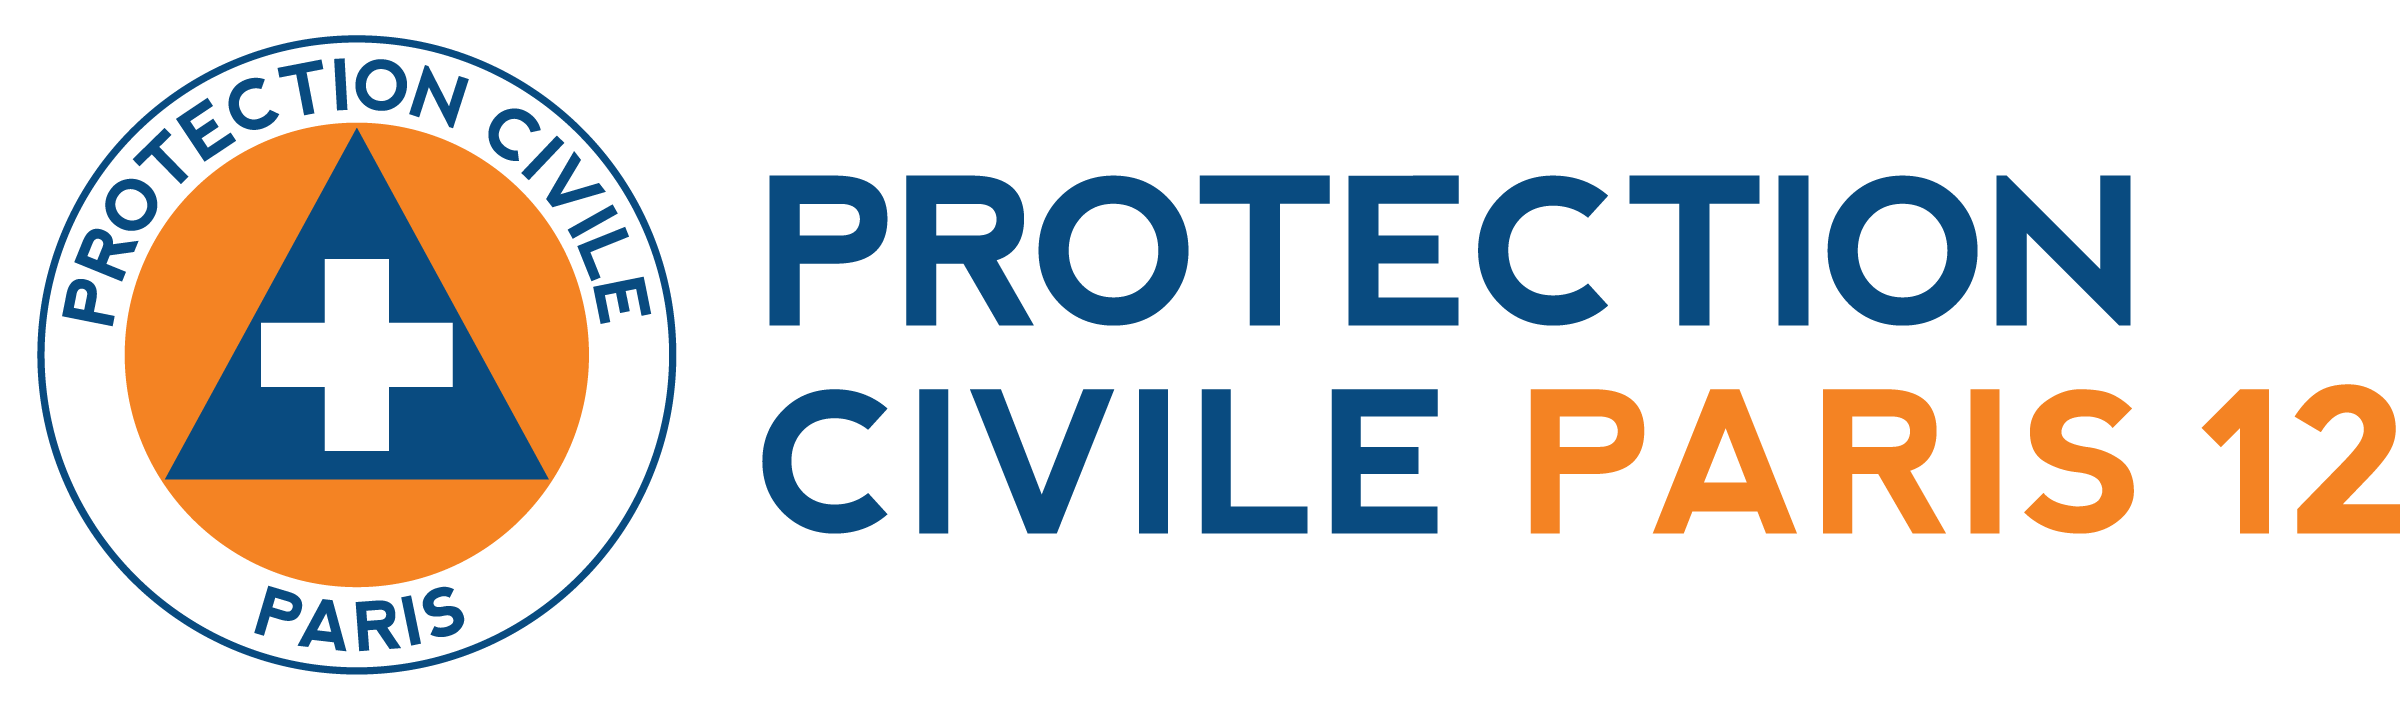 PROTECTION CIVILE PARIS 12 | Secours, Formations et Humanitaire